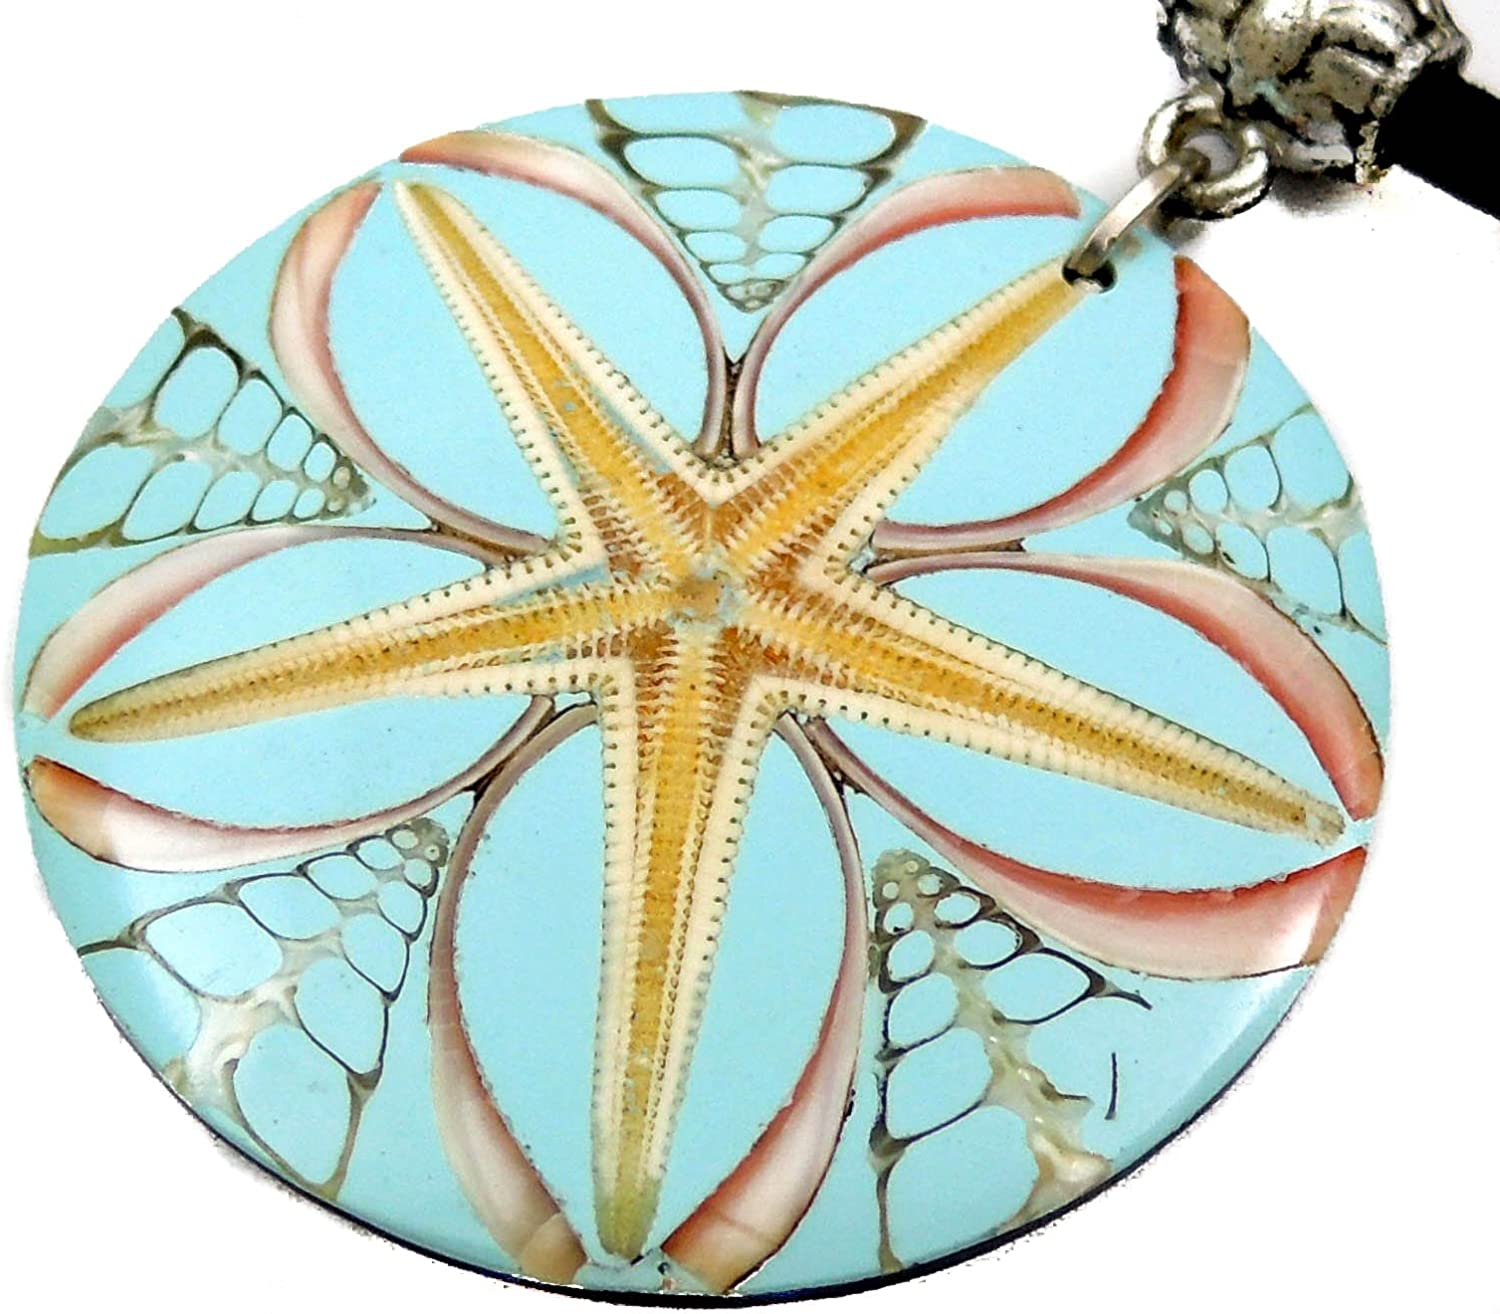 Turquoise Cone Shell, Starfish Pendant 16-26 inch Adjustable Cord Necklace Handmade Jewelry CA422